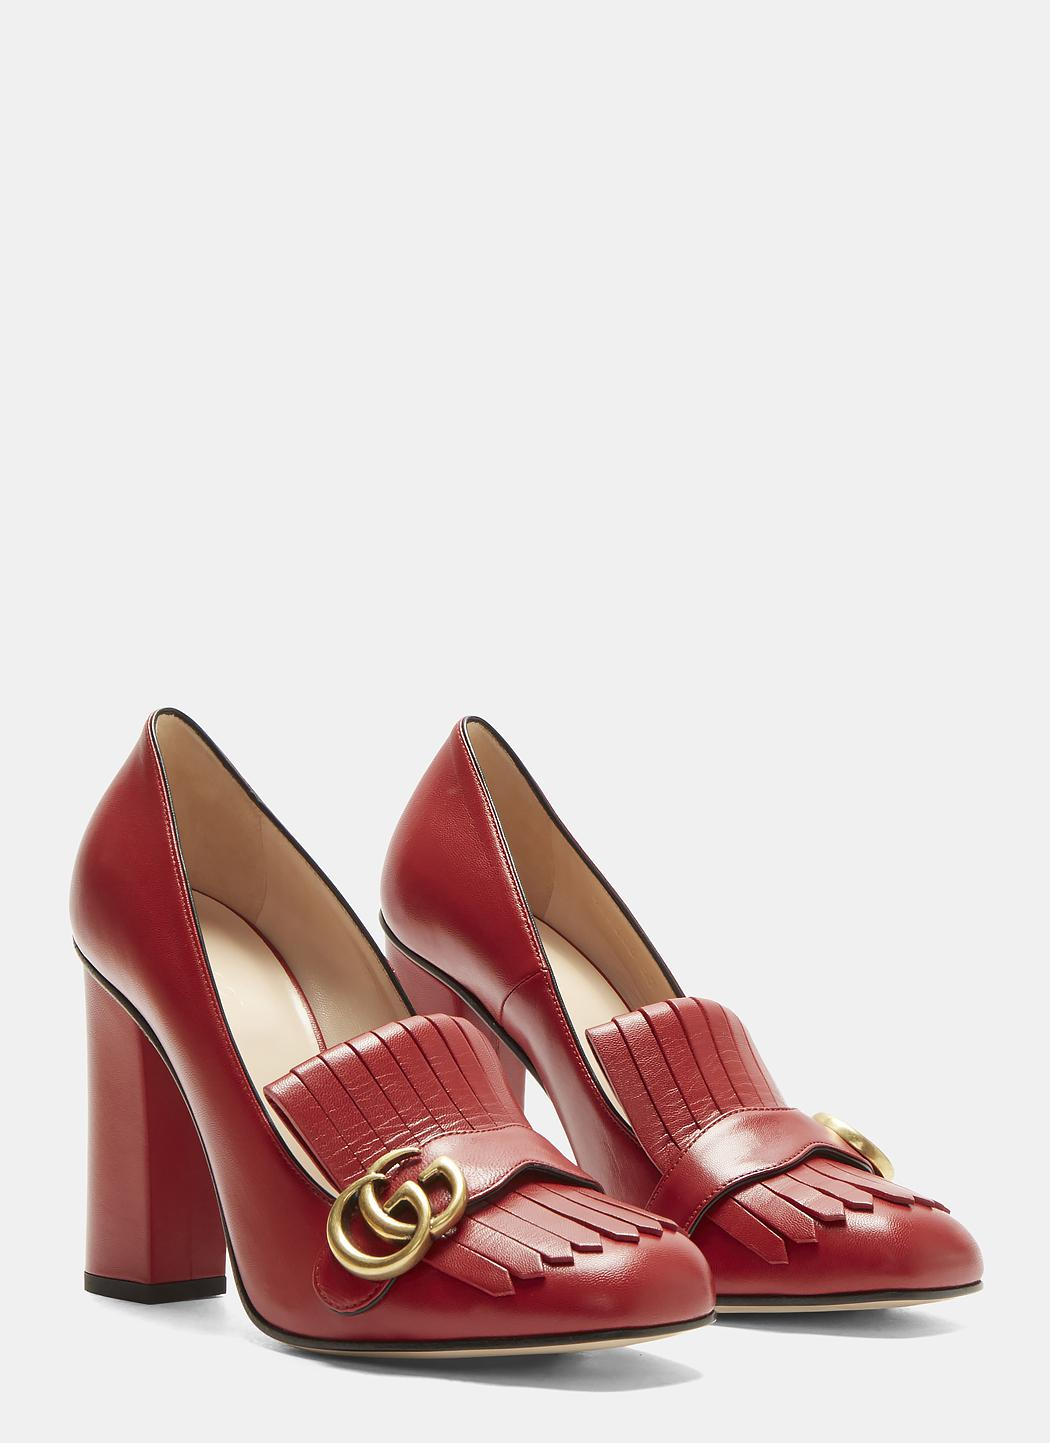 74406e8267 Gucci GG High-heel Fringed Marmont Pumps In Red in Red - Lyst